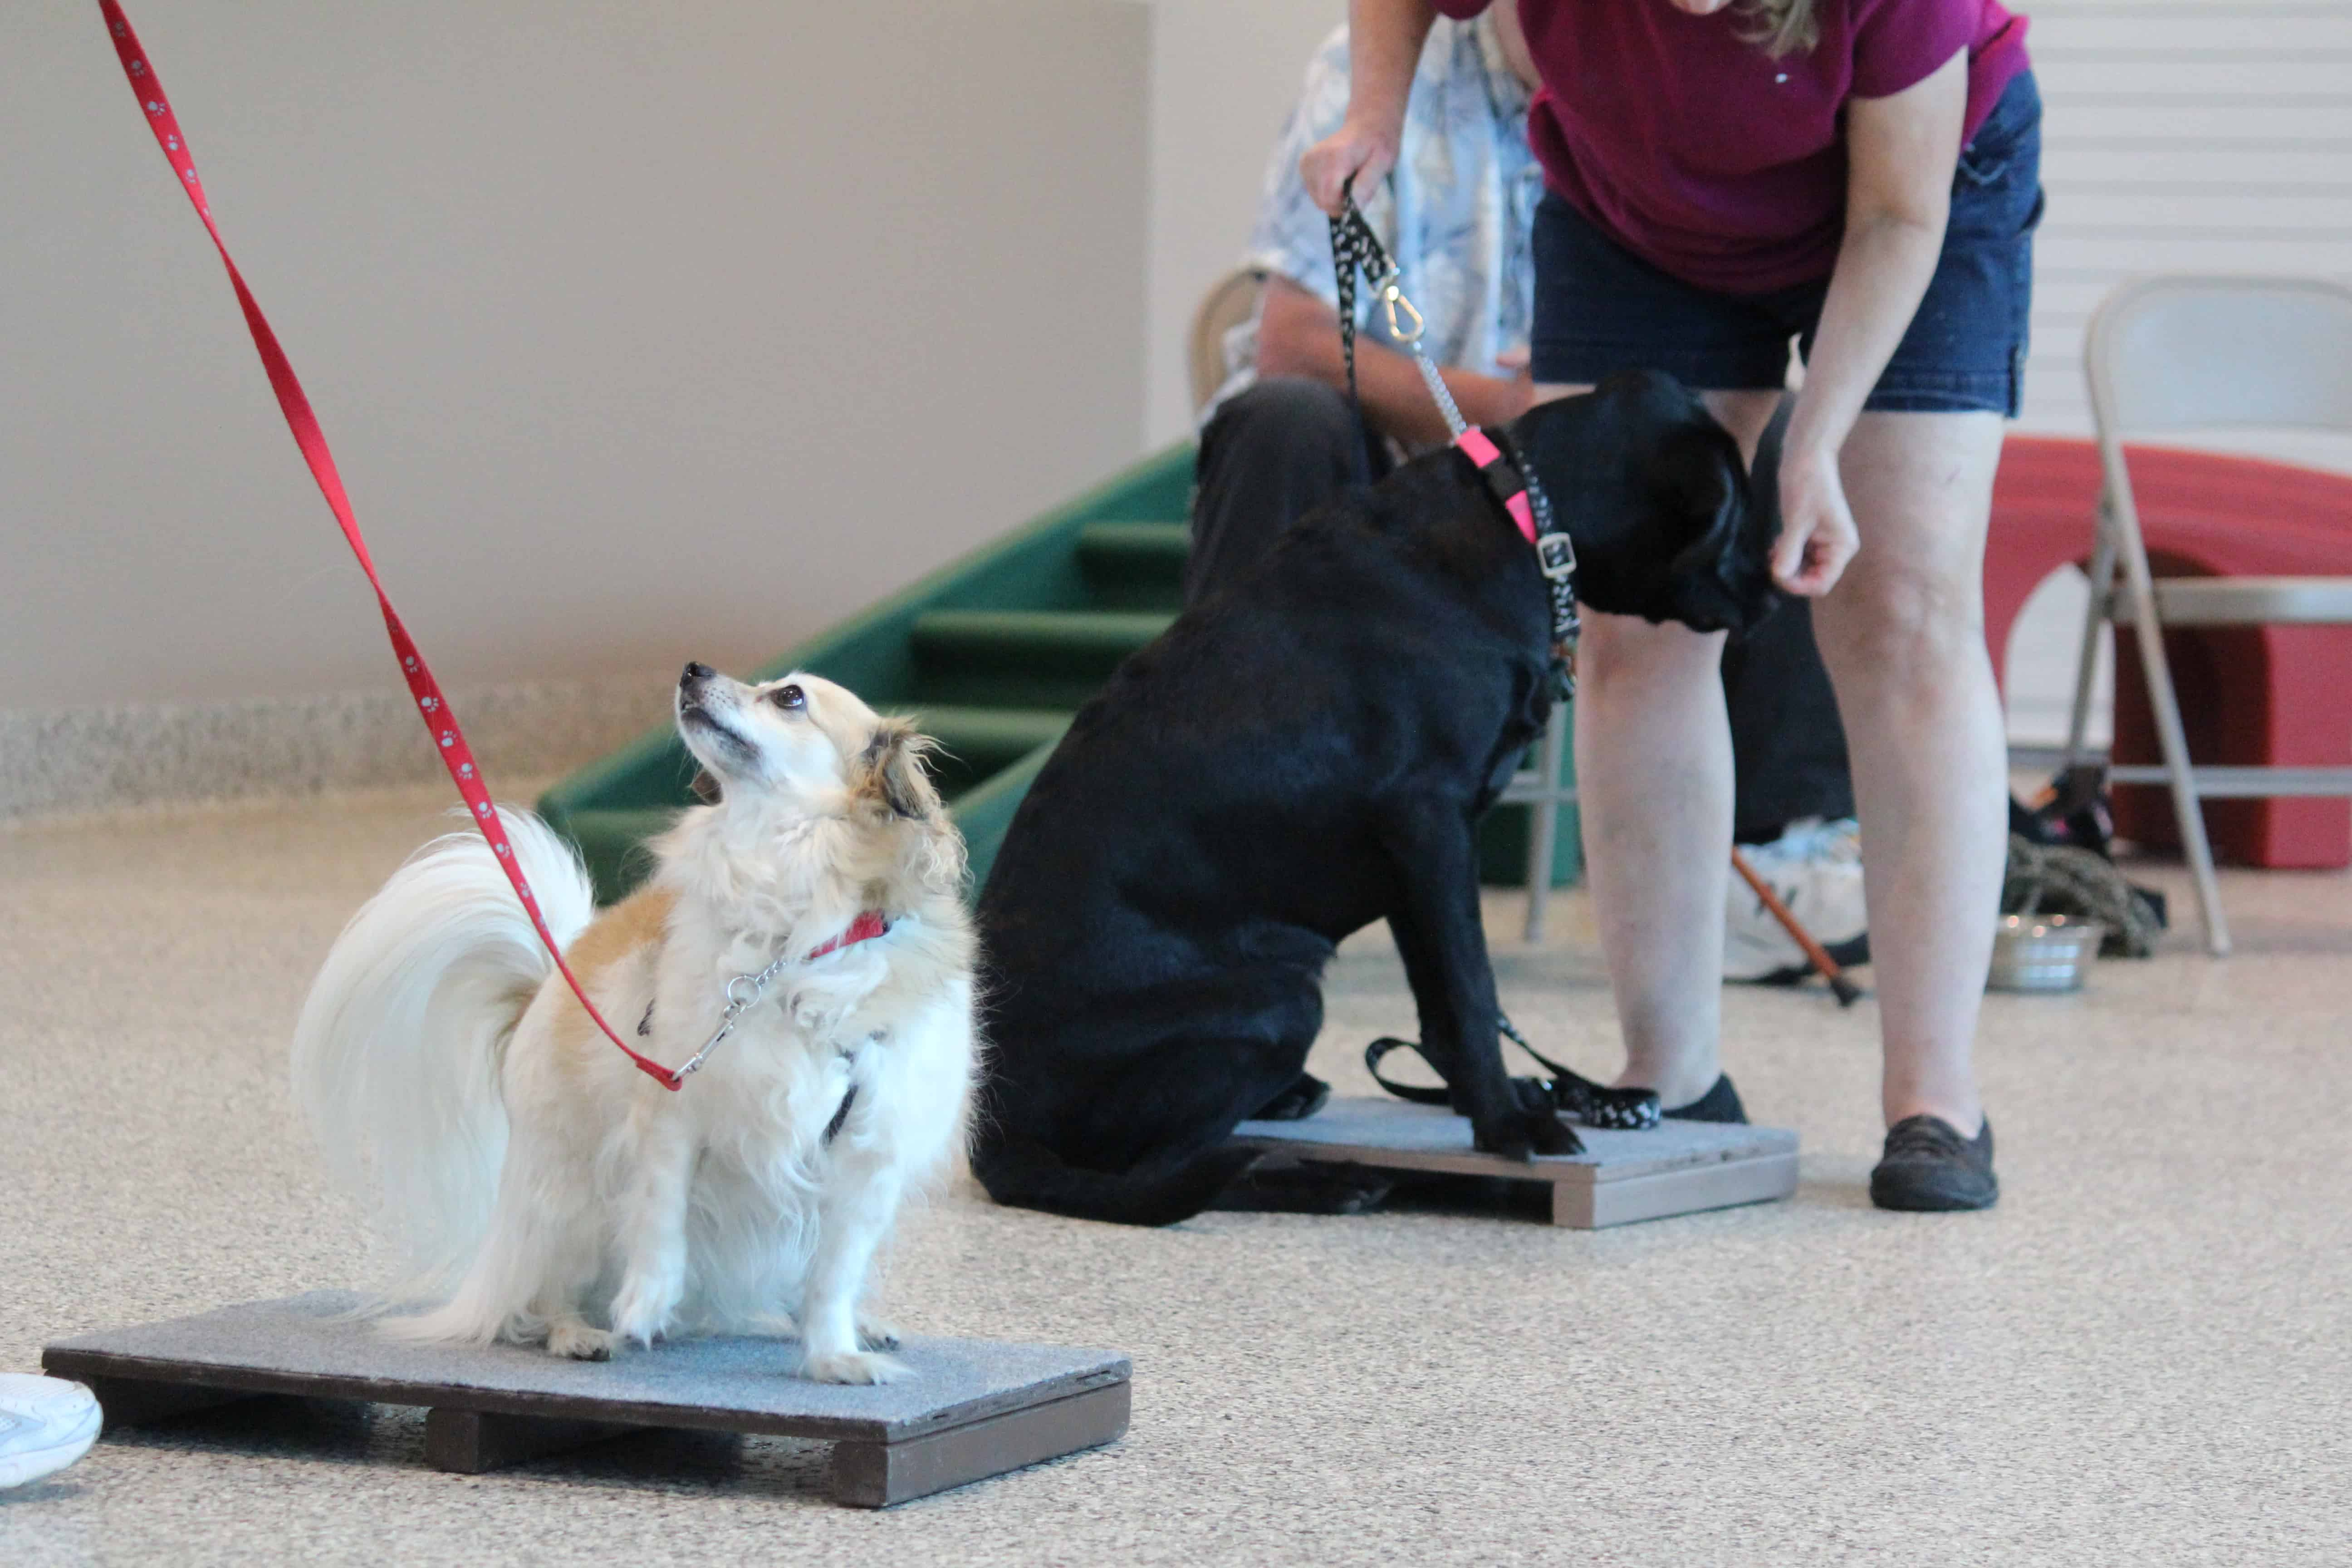 Chihuahua and Lab obedience training at Bayside Pet Resort of Osprey